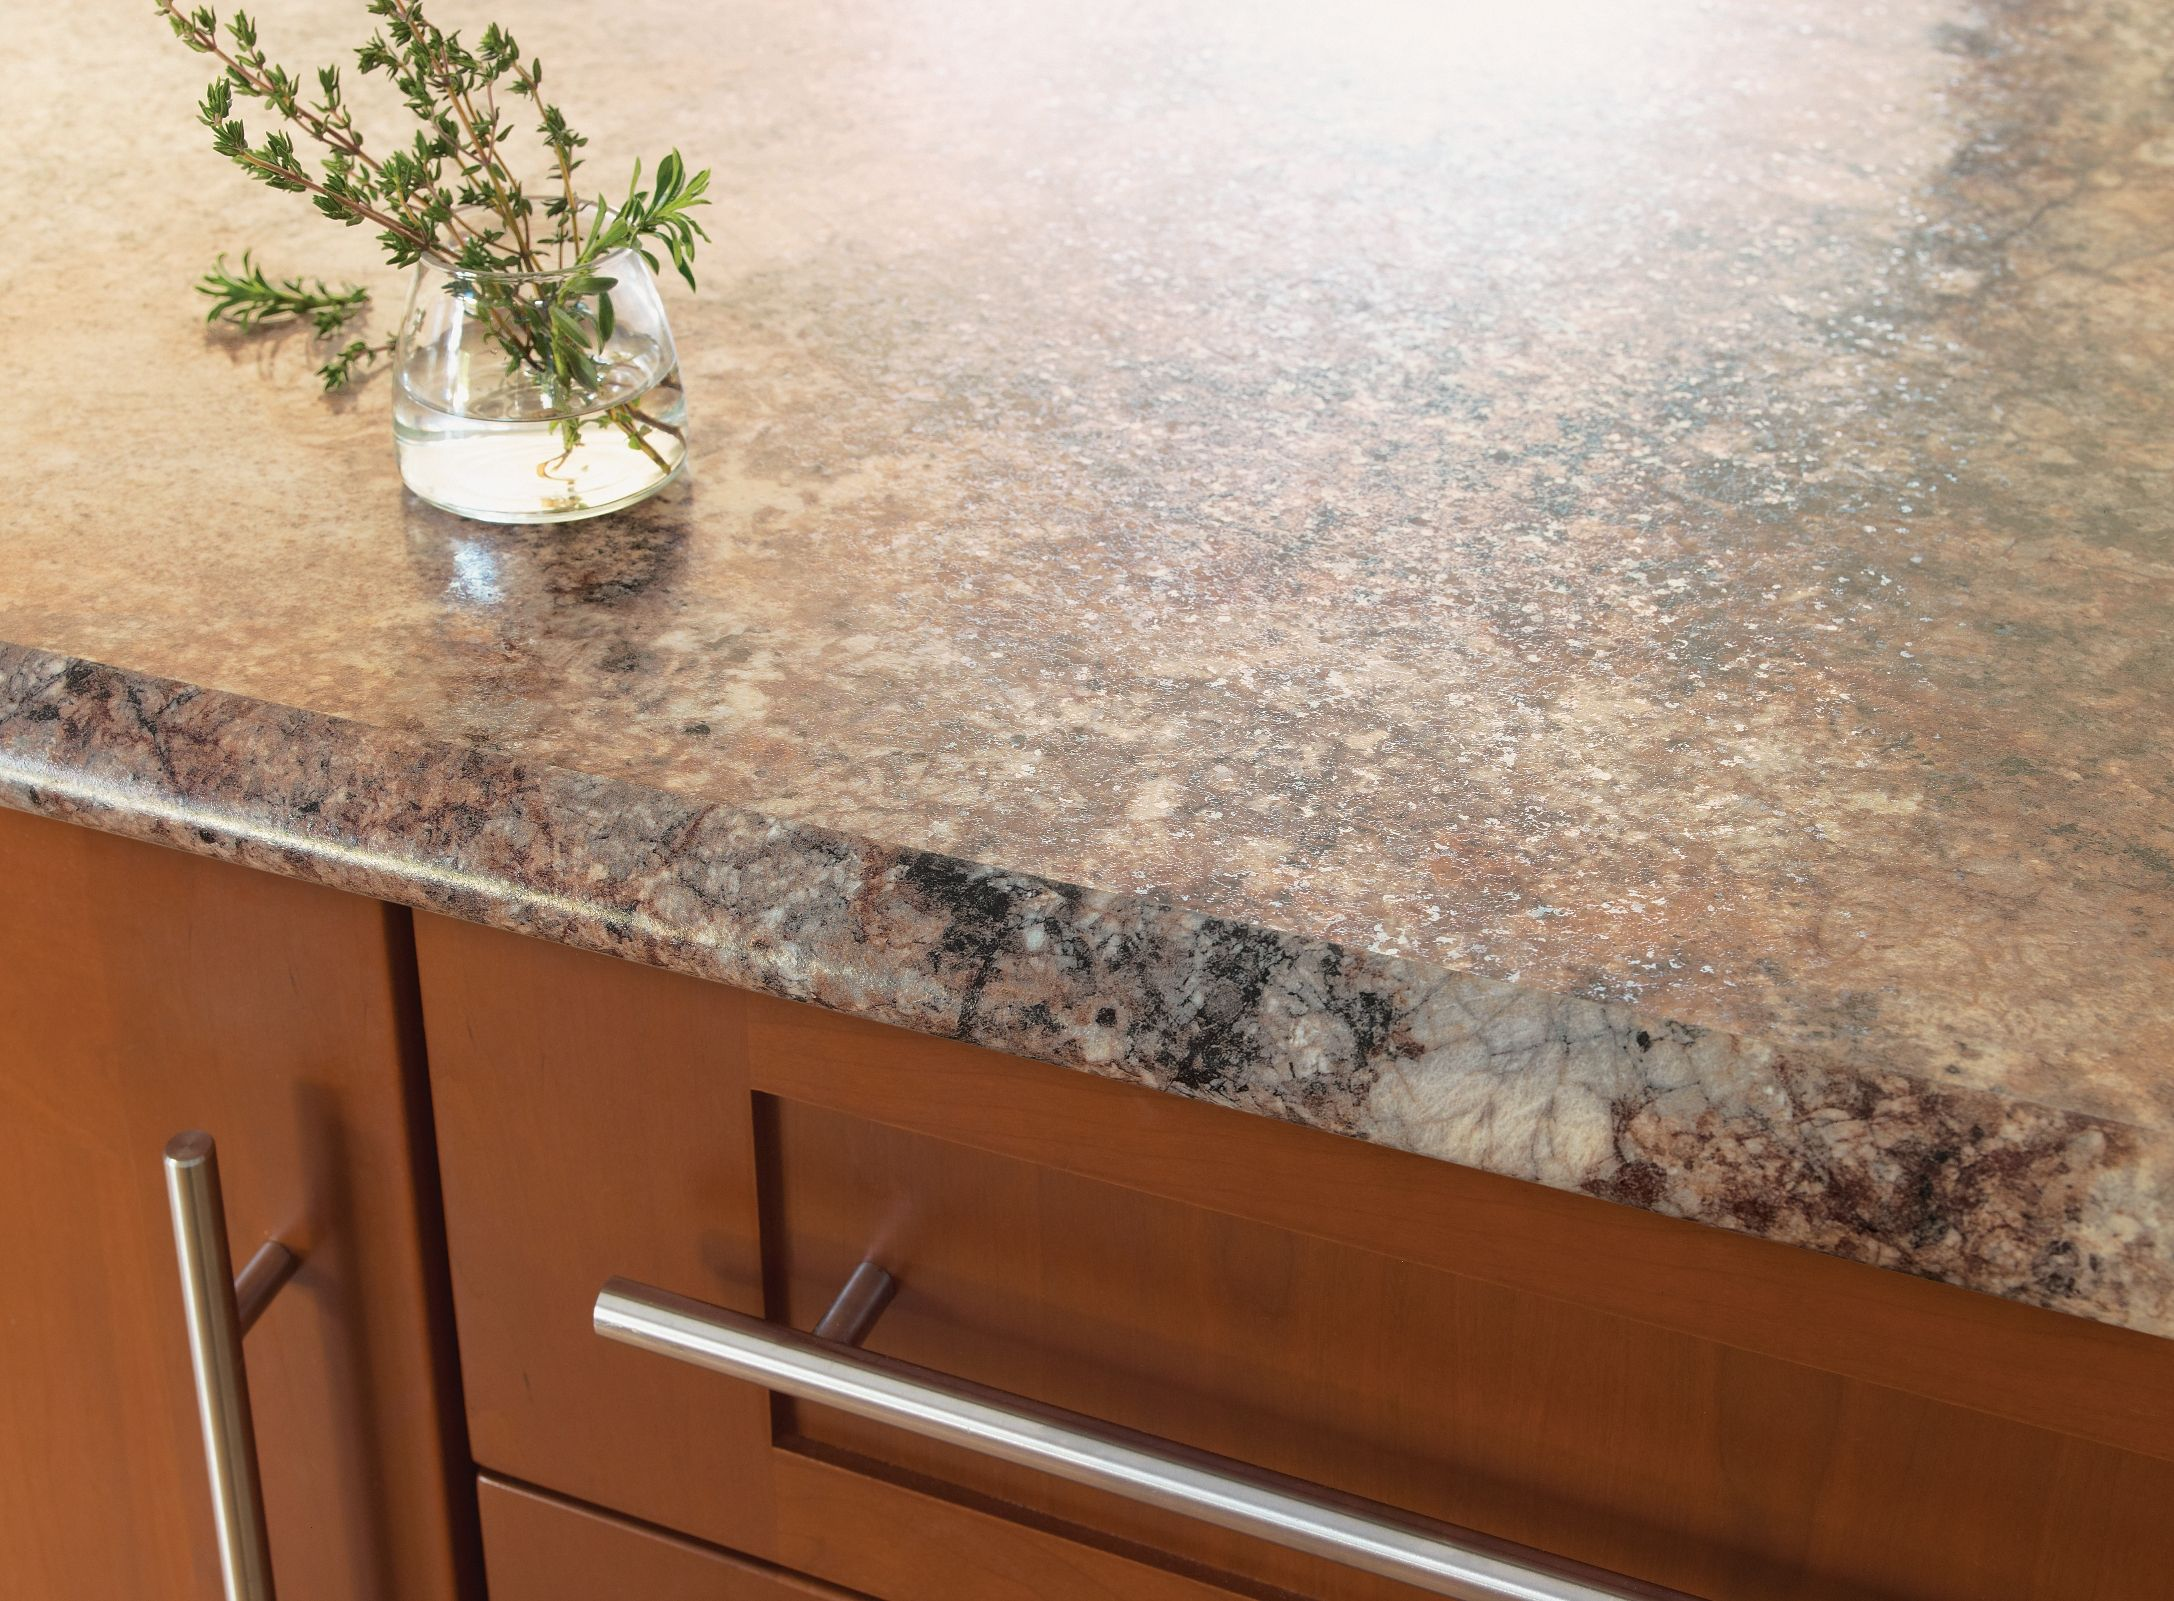 Mascarello Laminate Countertop Formica Antique Mascarello Kitchen Countertop